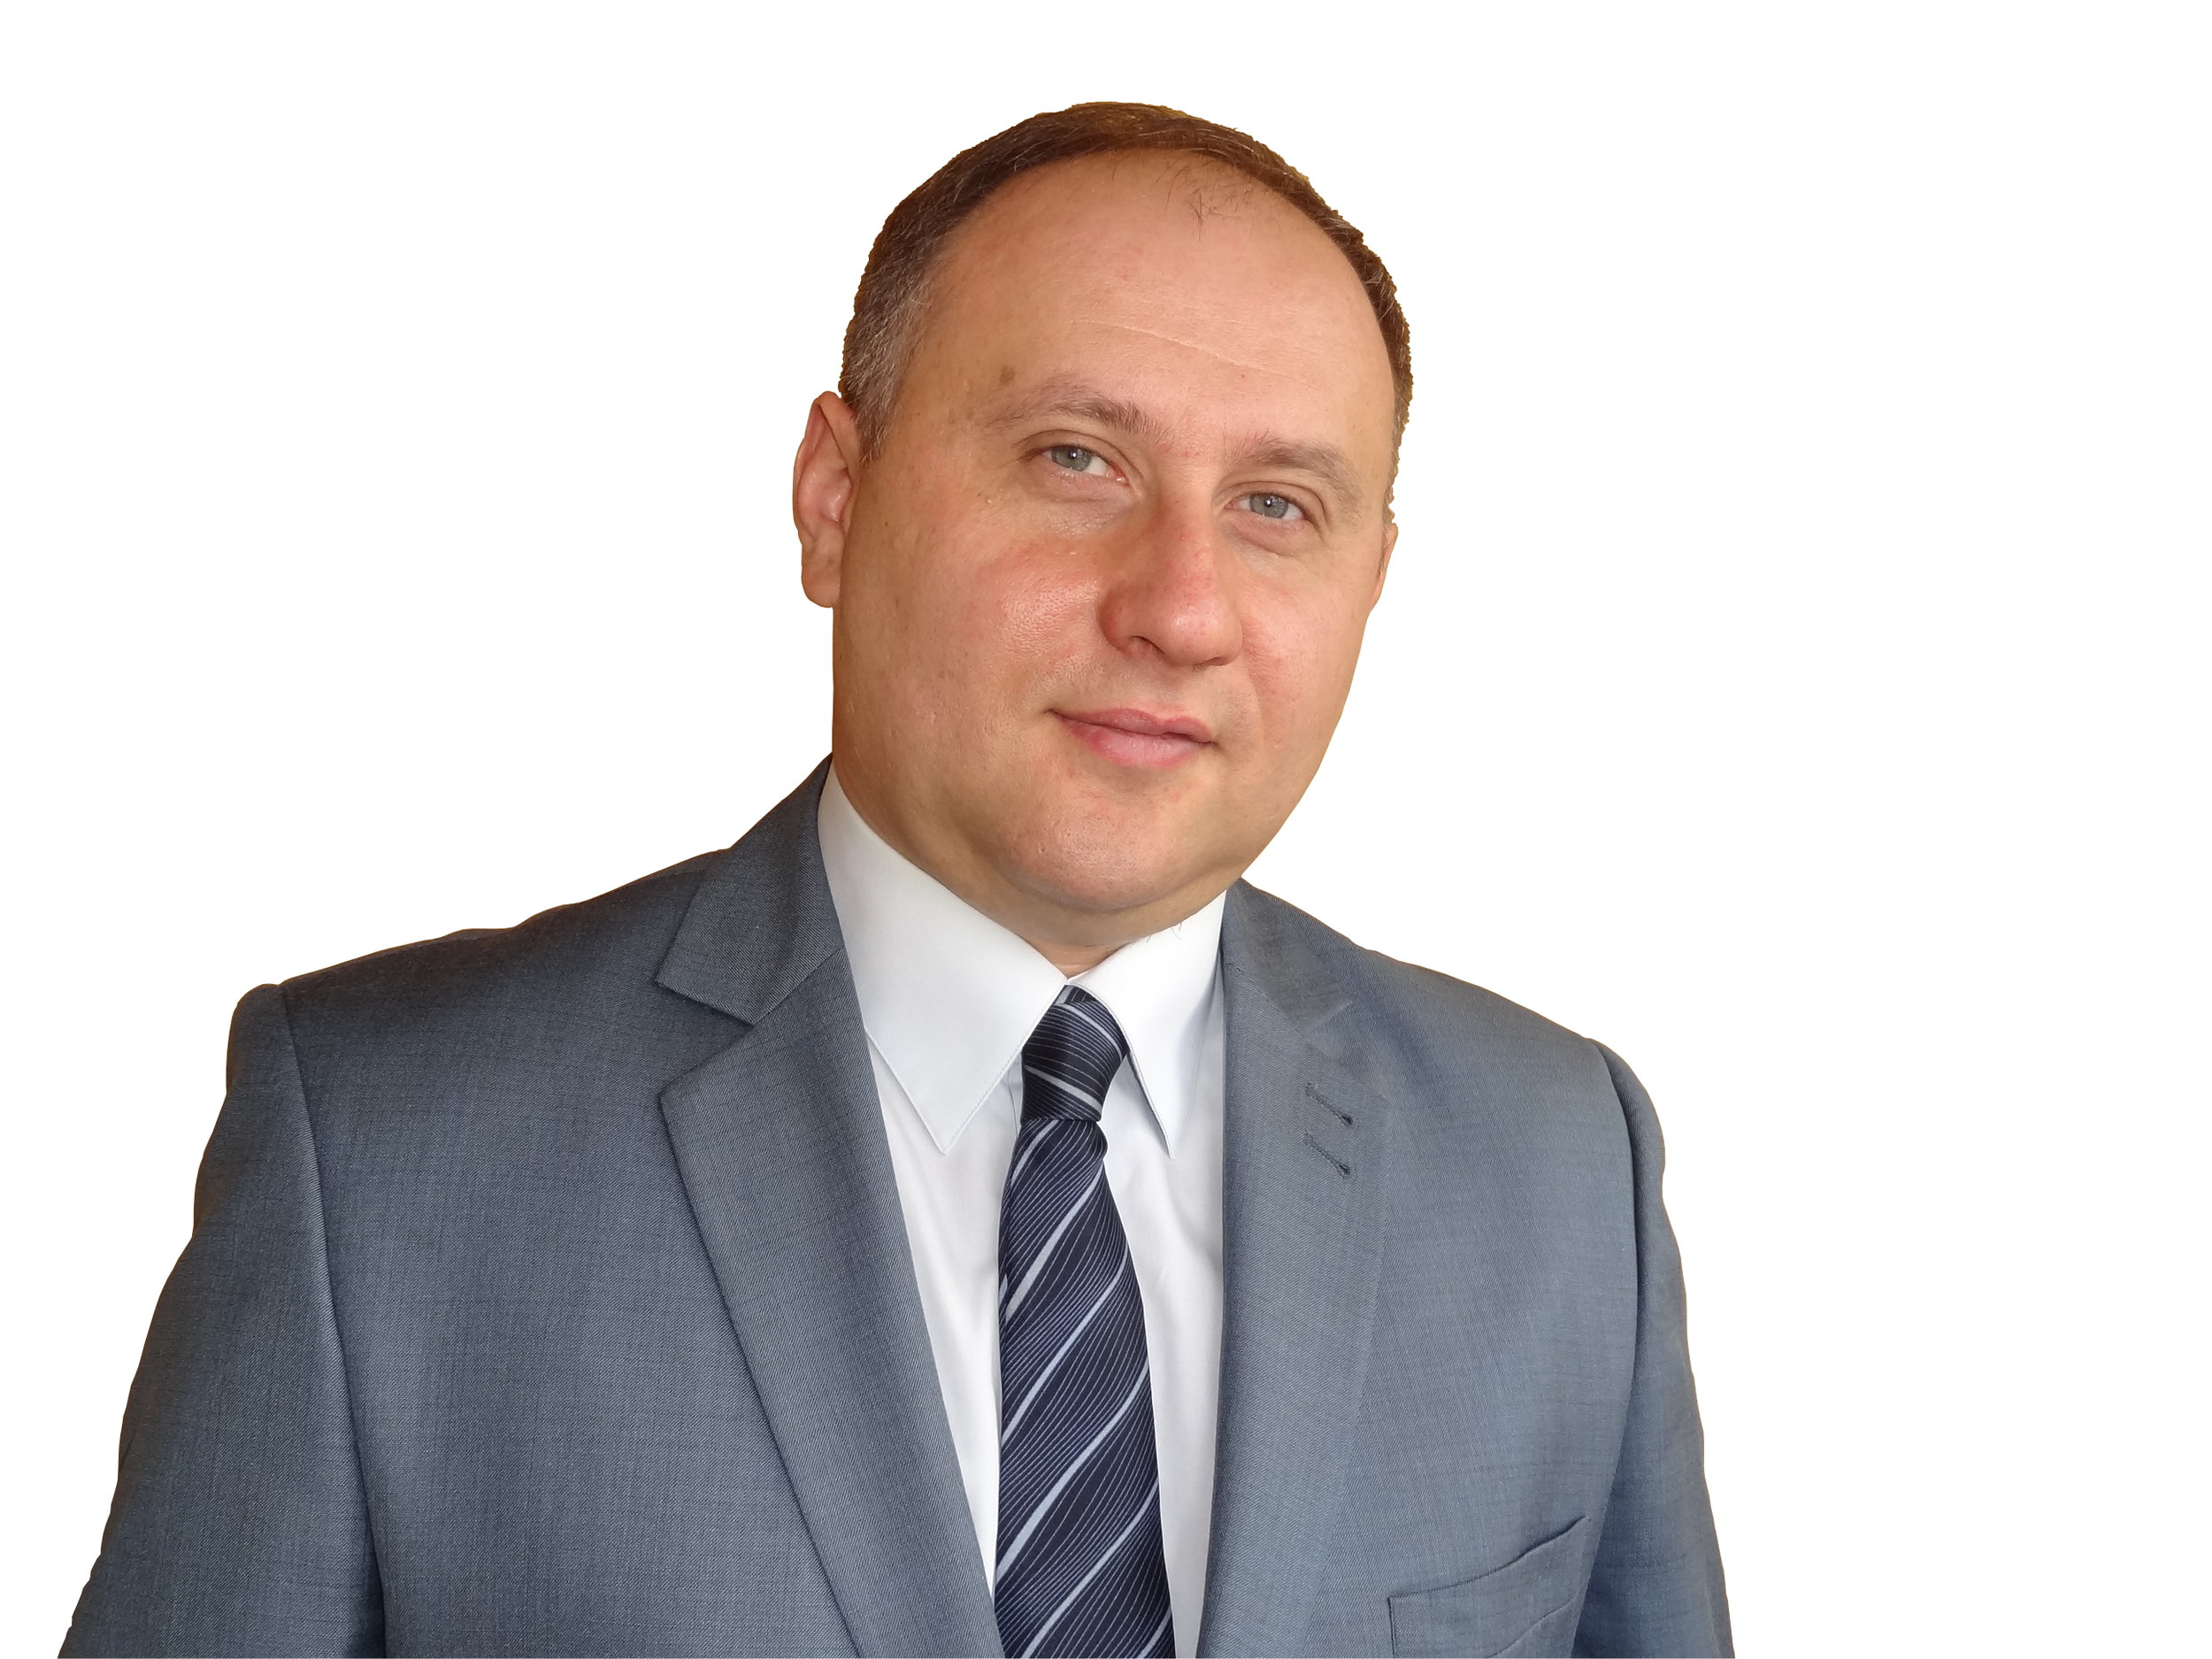 Sergey Krasnoshtan - Sales Manageremail contact here.